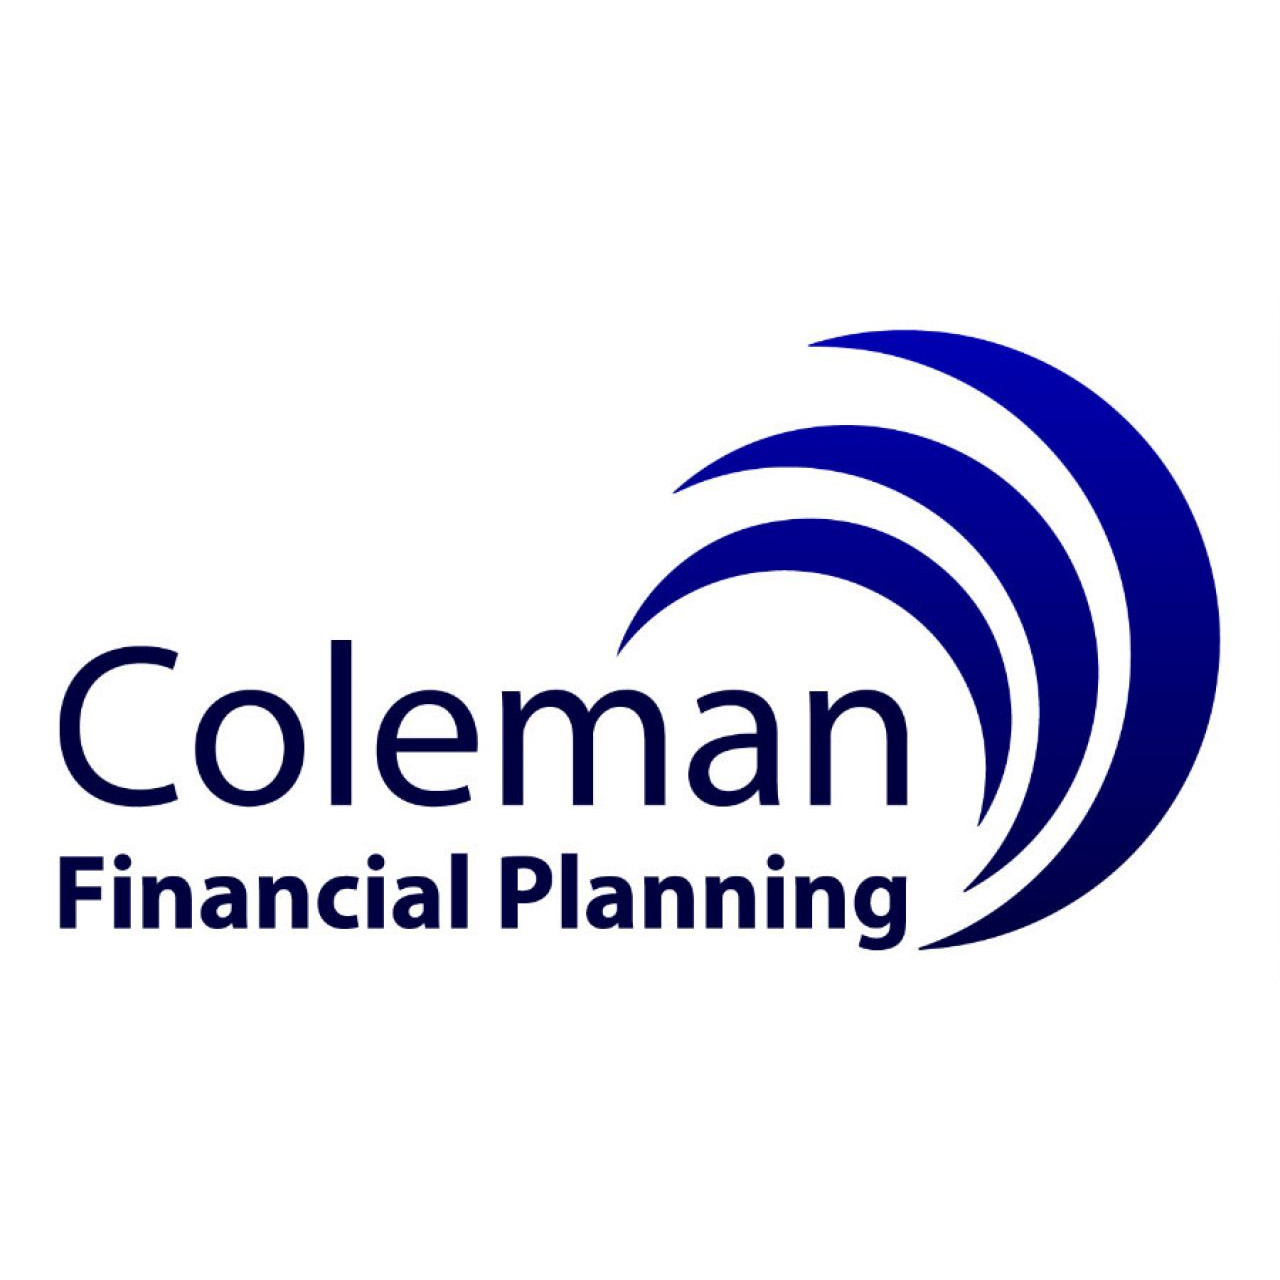 Coleman Financial Planning